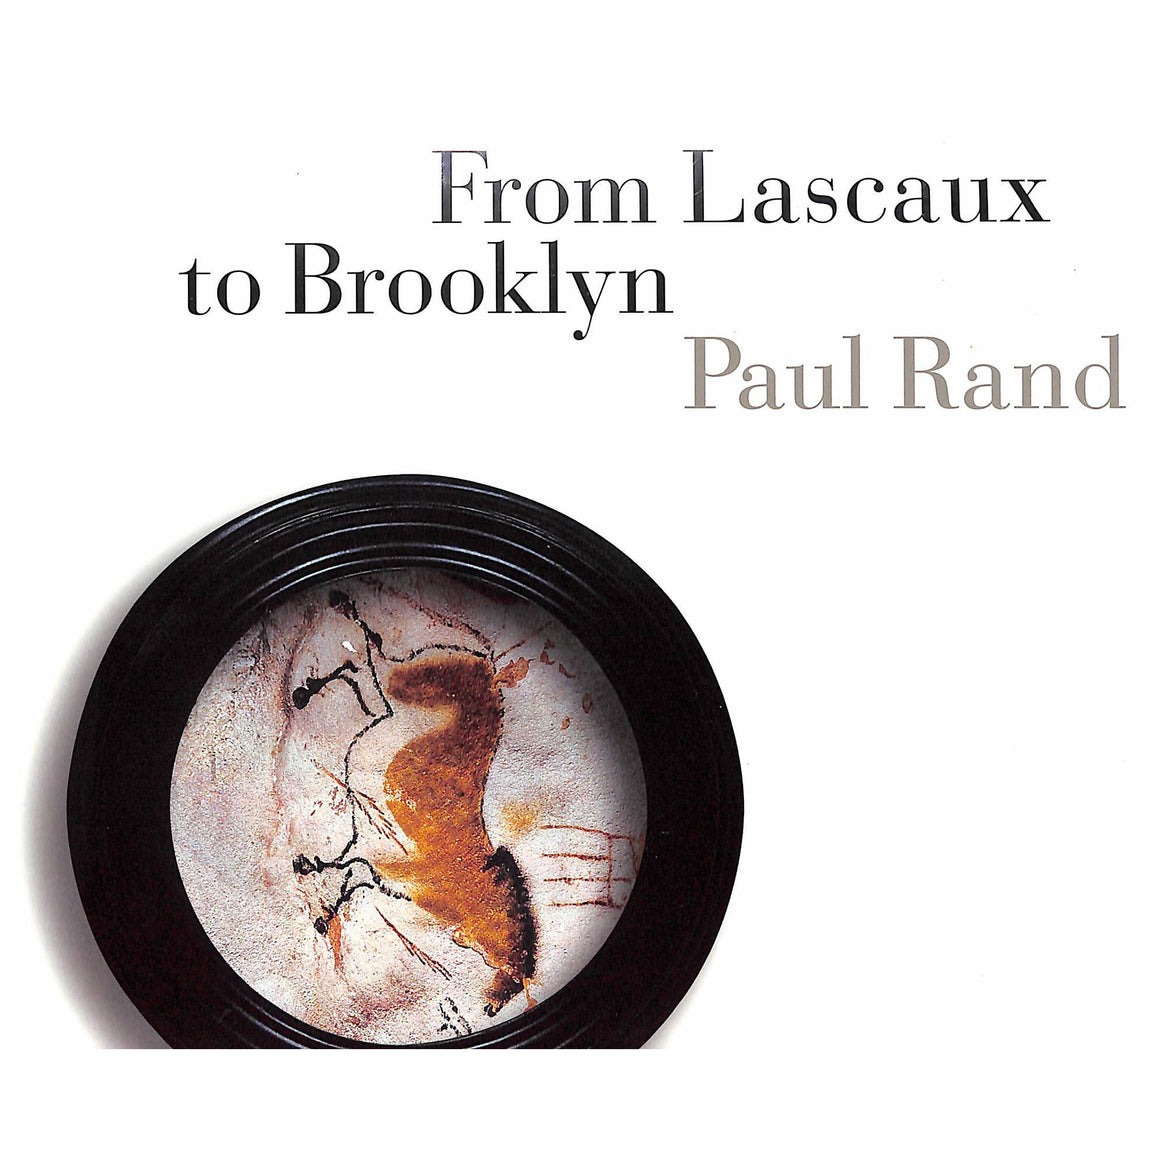 From Lascaux to Brooklyn